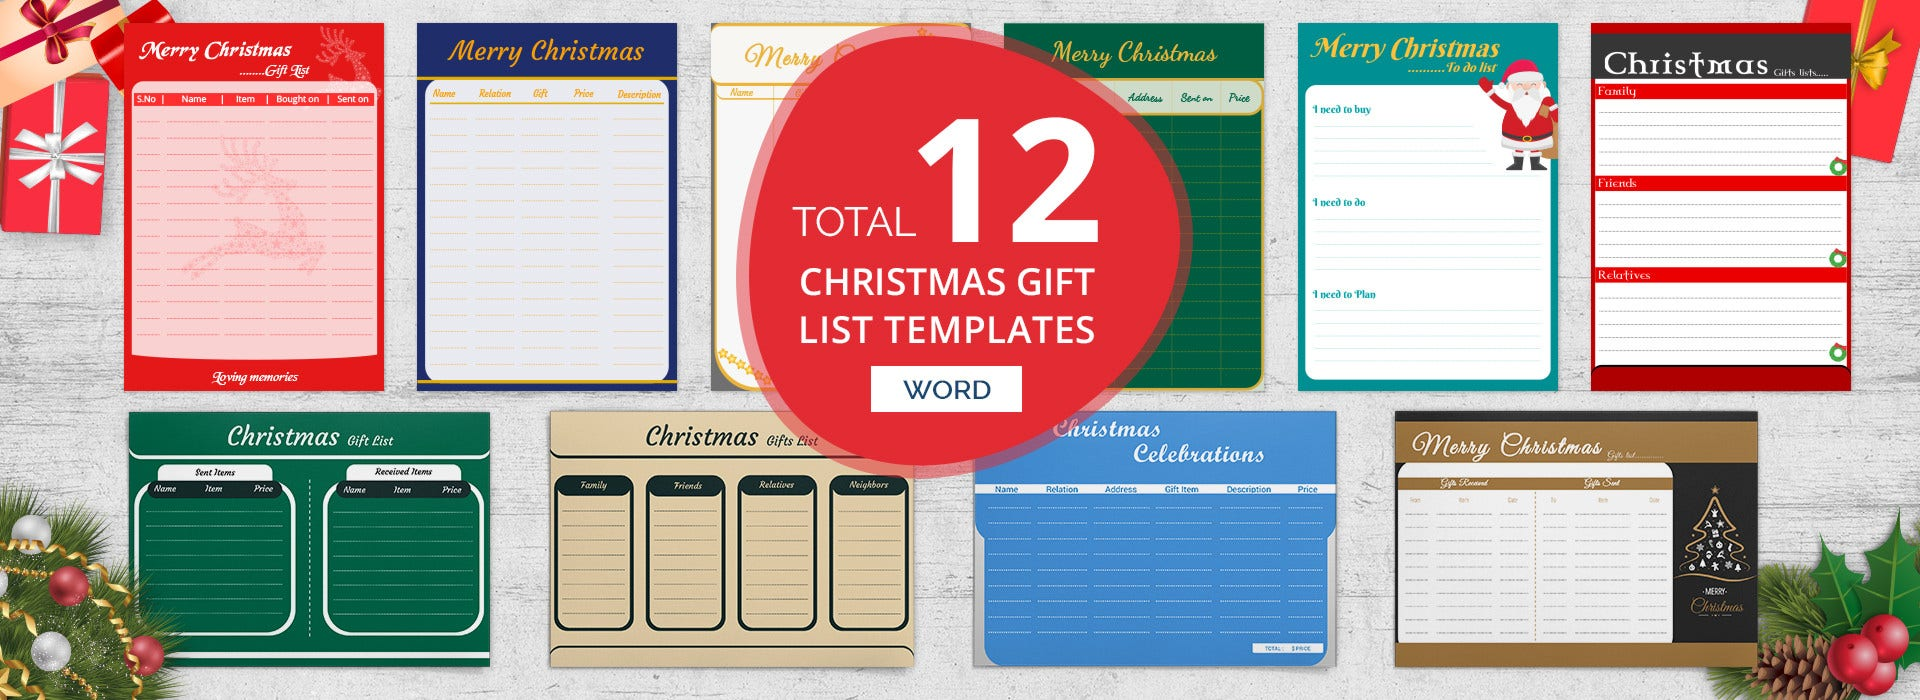 C45cba Secret Santa Wish List Template C Examples And Forms